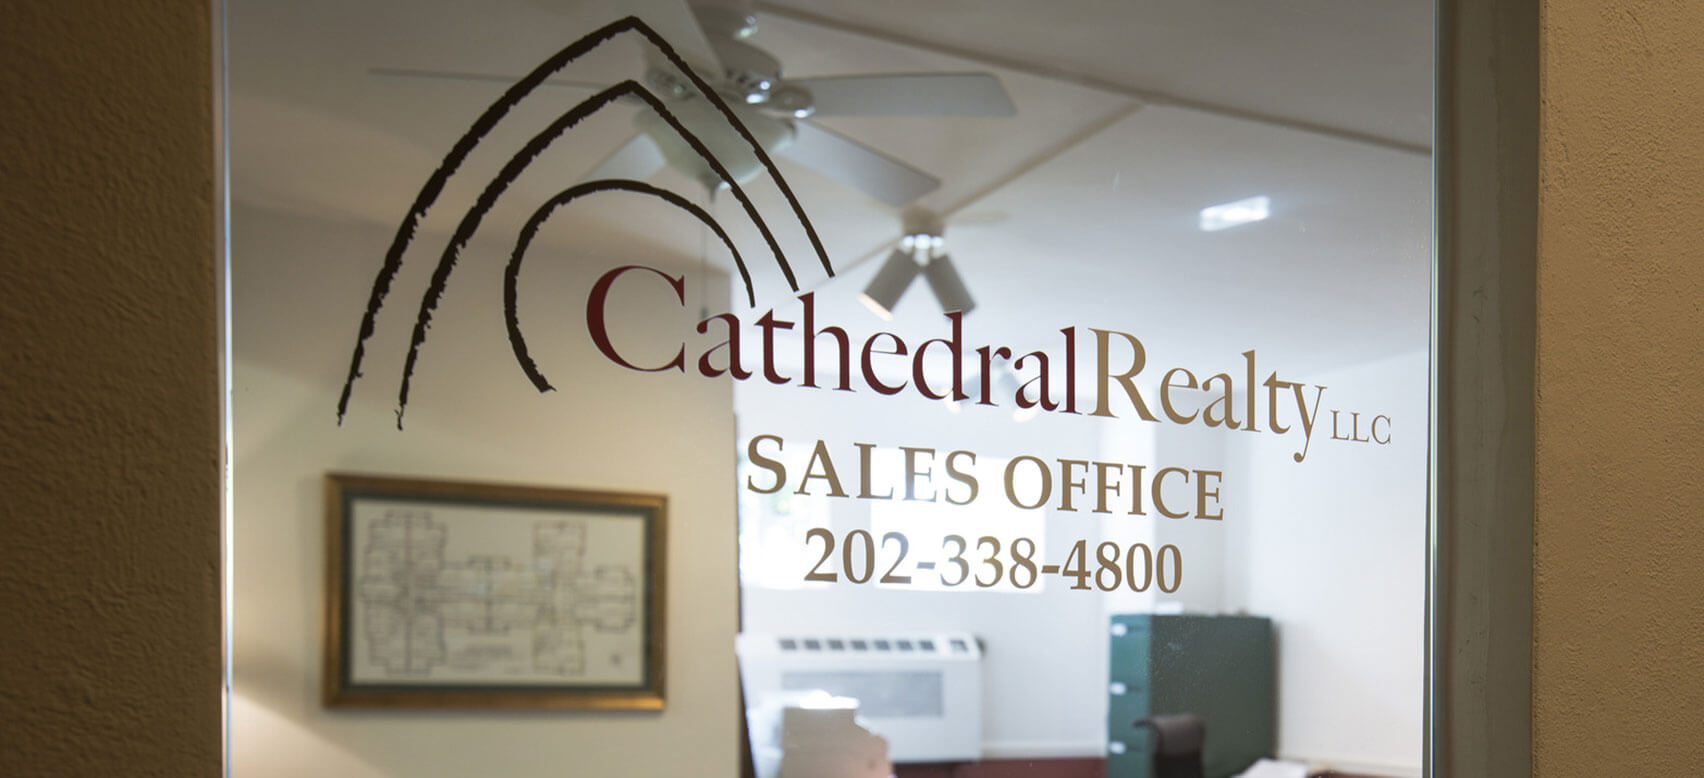 Photo: Cathedral Realty